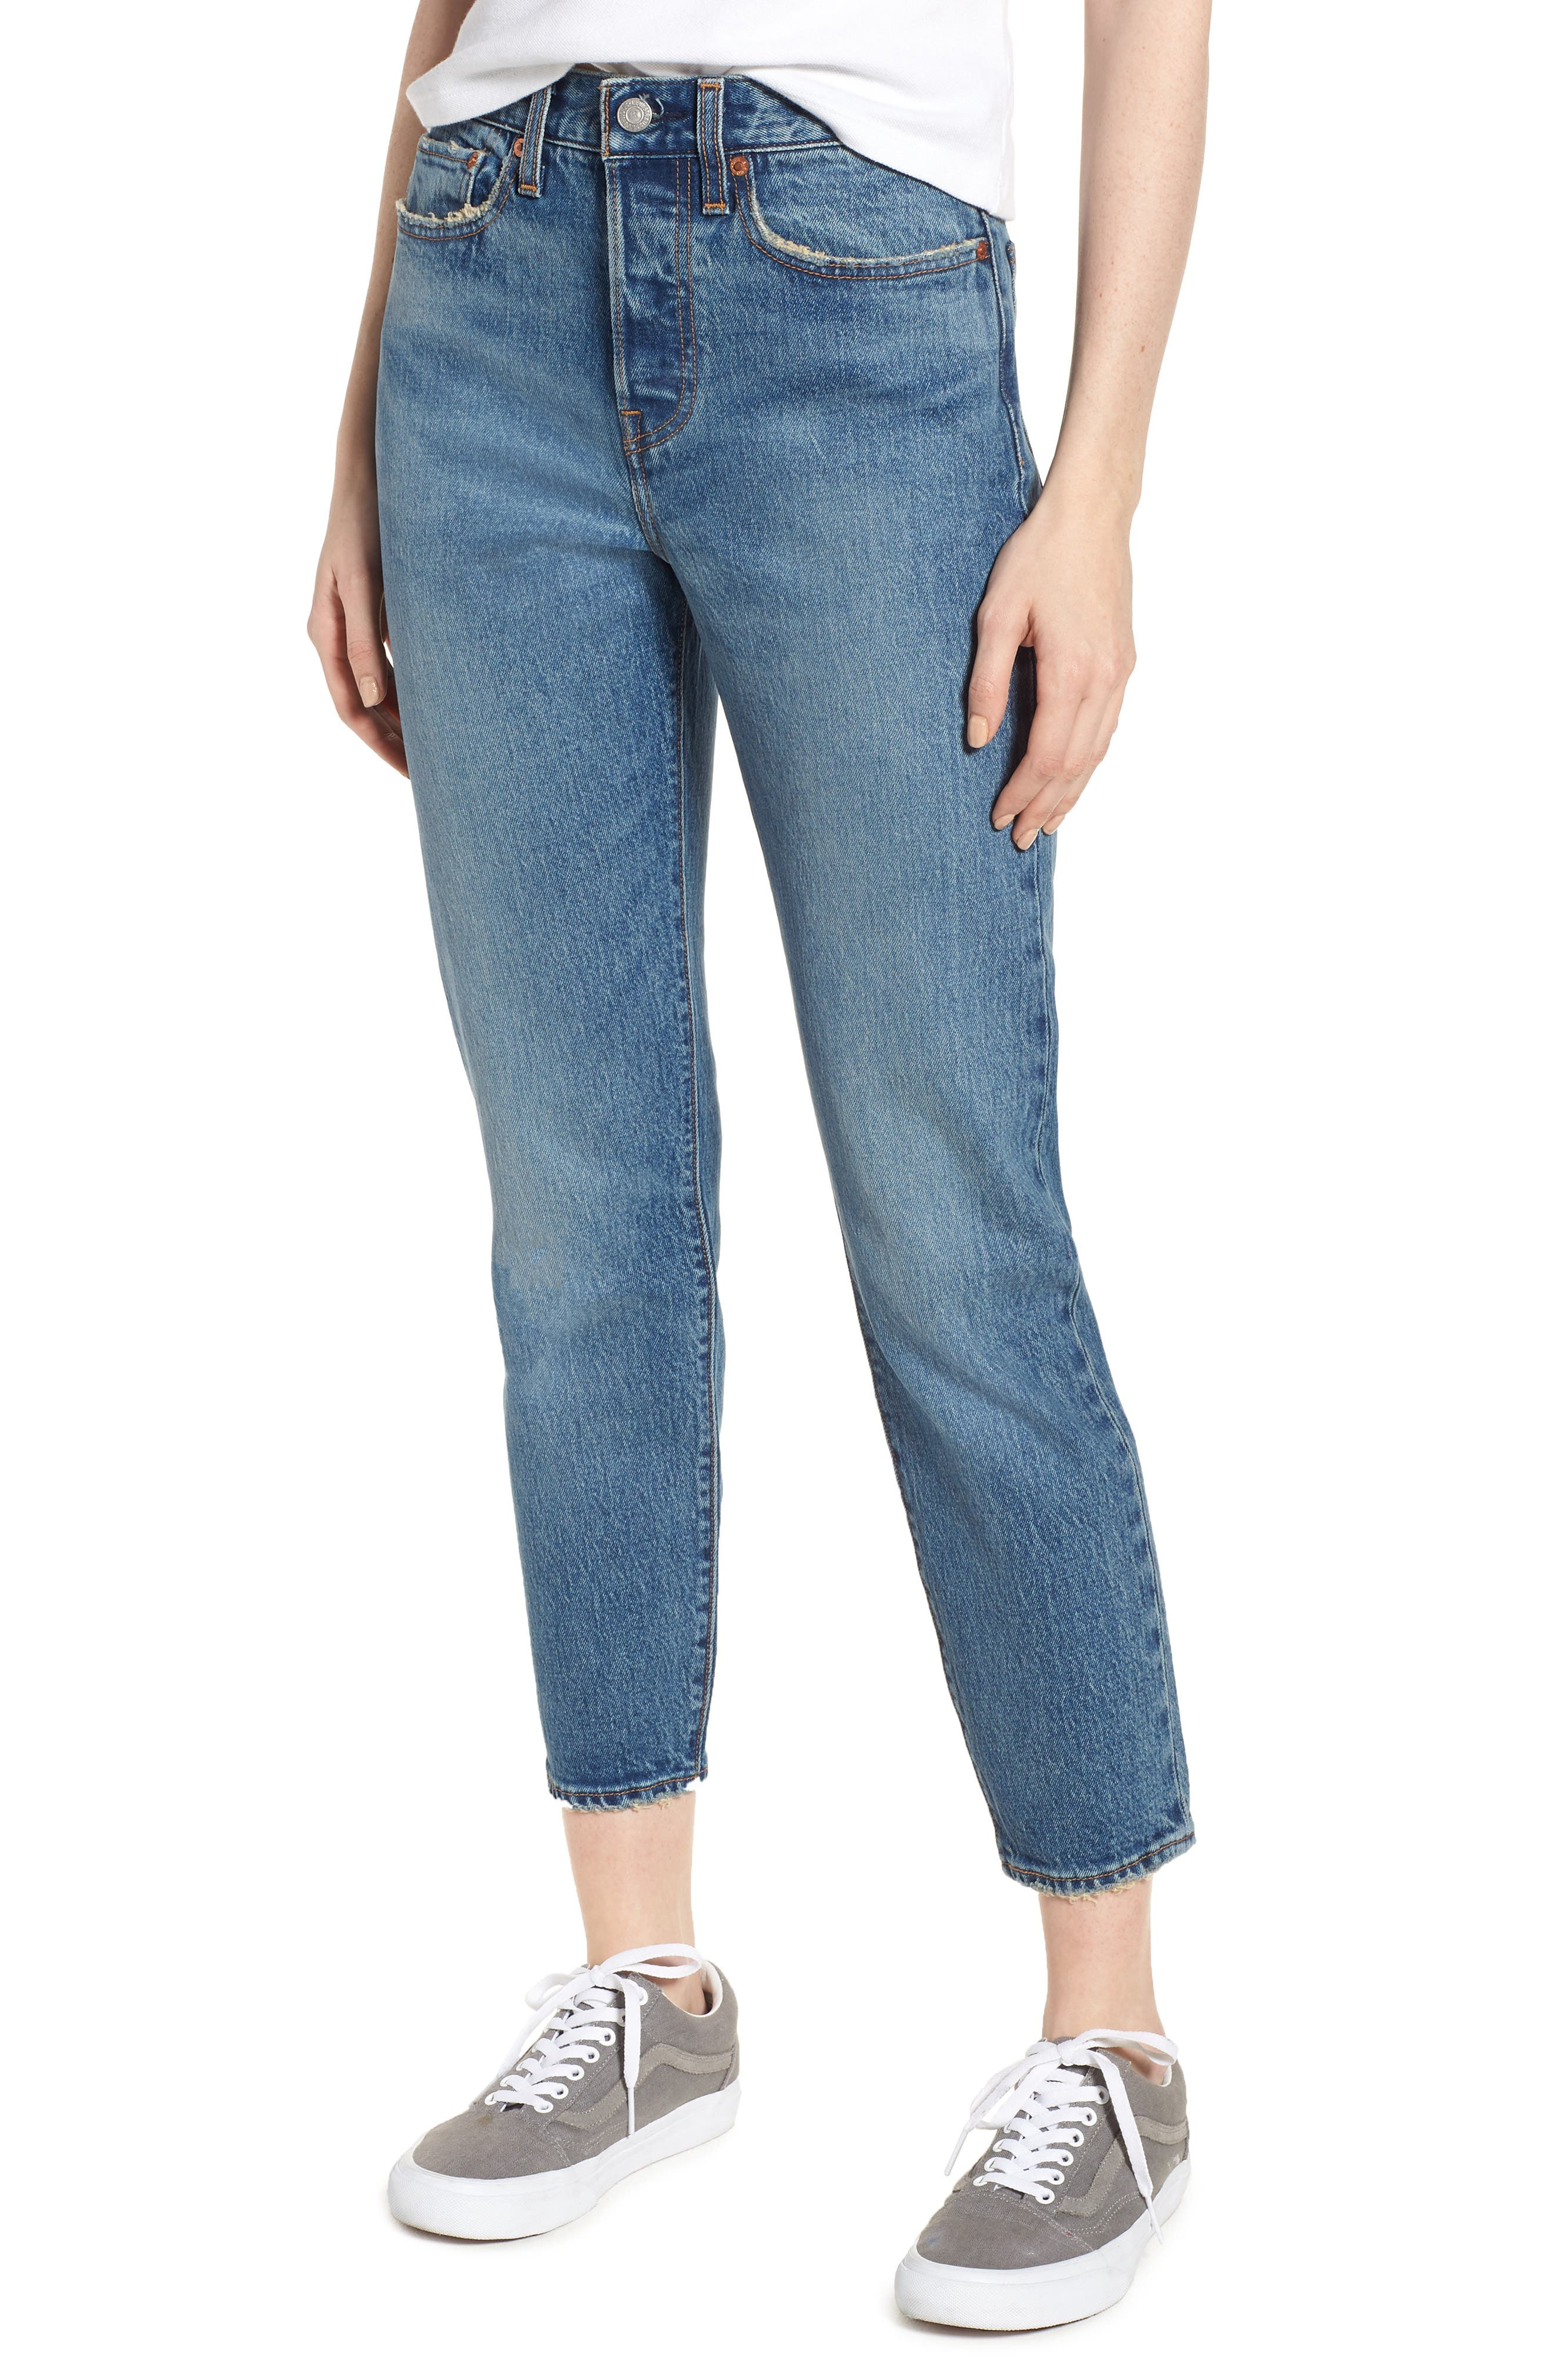 LEVI'S<SUP>®</SUP>, Wedgie Icon Fit High Waist Ankle Jeans, Main thumbnail 1, color, THESE DREAMS